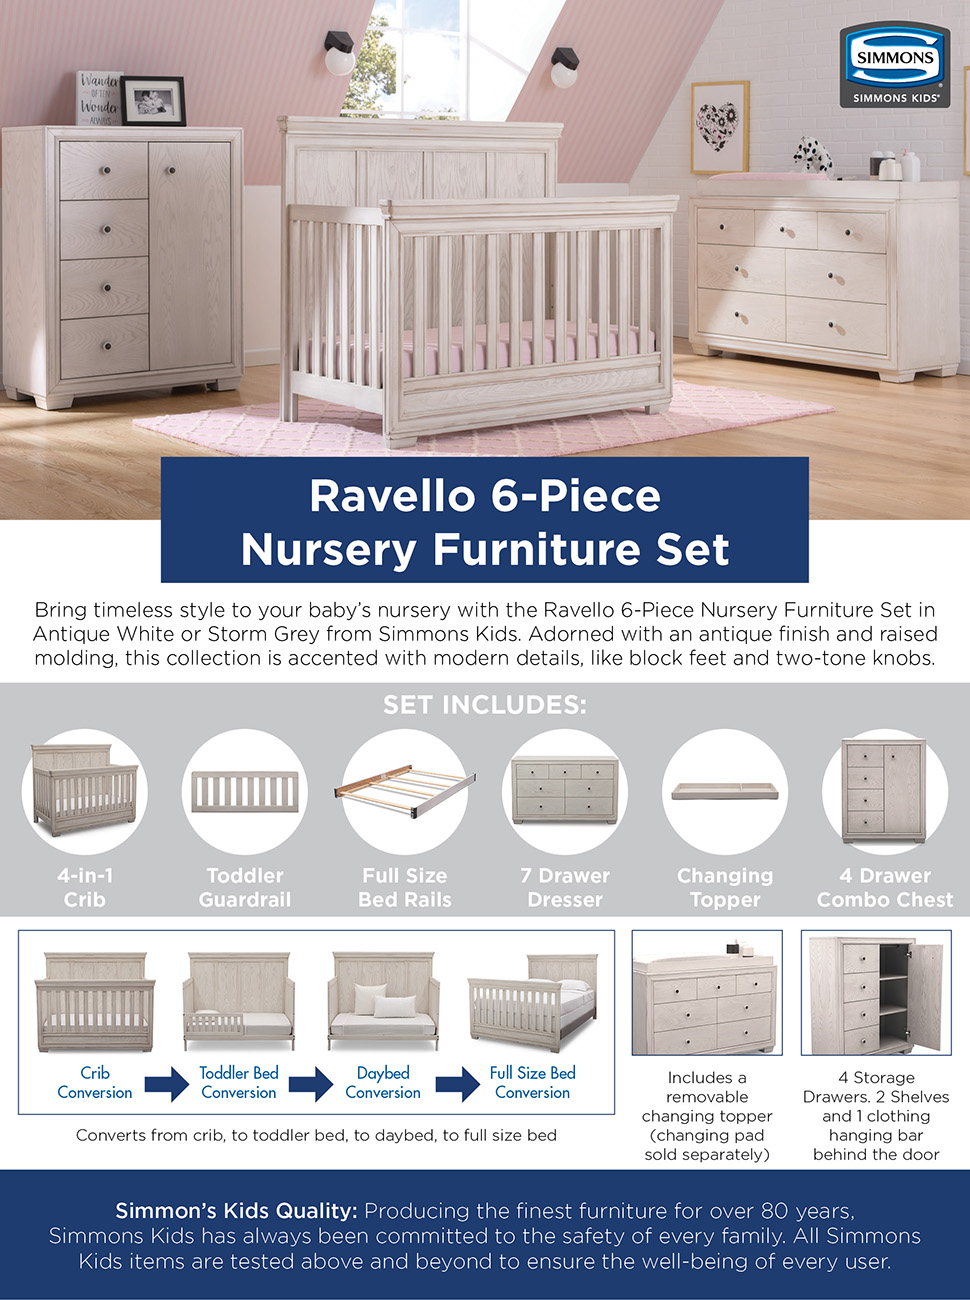 Bring timeless style to your baby's nursery with the Ravello 6-Piece Nursery  Furniture Set in Antique White or Storm Grey from Simmons Kids. - Amazon.com : Simmons Kids Ravello 6-Piece Nursery Furniture Set